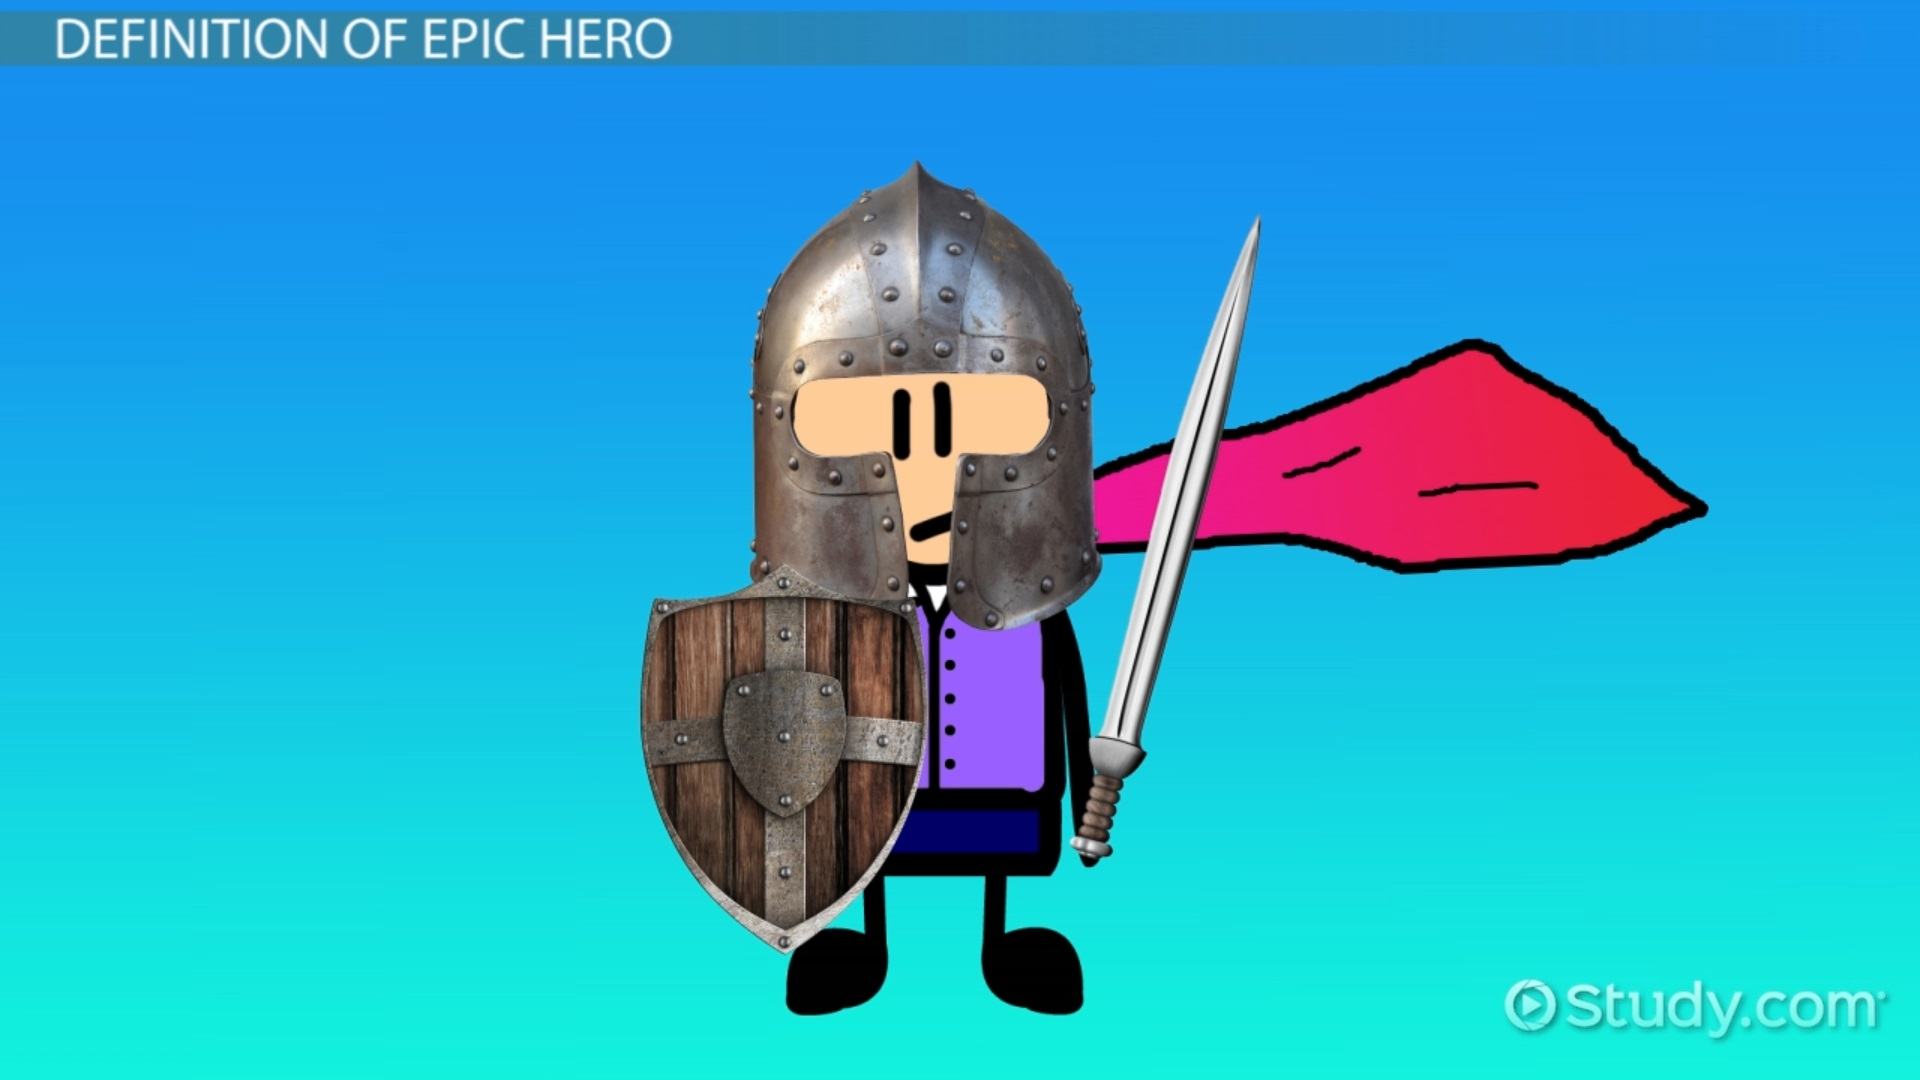 essays on odysseus epic hero Odysseus is the epic hero because he is strong and cunning, he encounters struggles, and he has perseverance odysseus is the epic hero because of his strength and cunningness we will write a custom essay sample on.